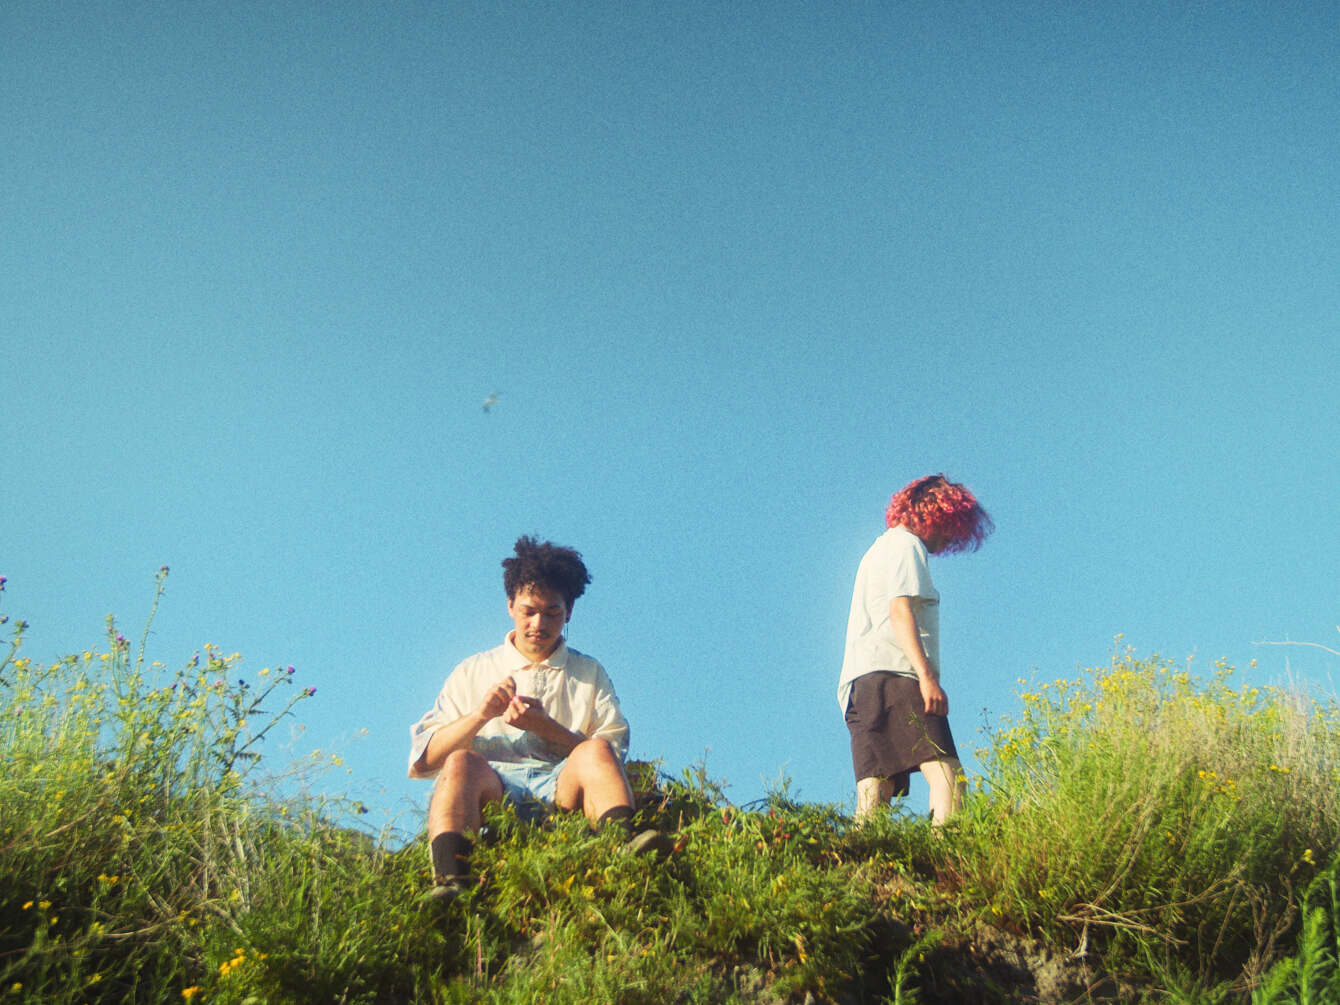 Still from Incendios. A wide shot of the two boys on some grass on a small hill. The sky is bright blue.